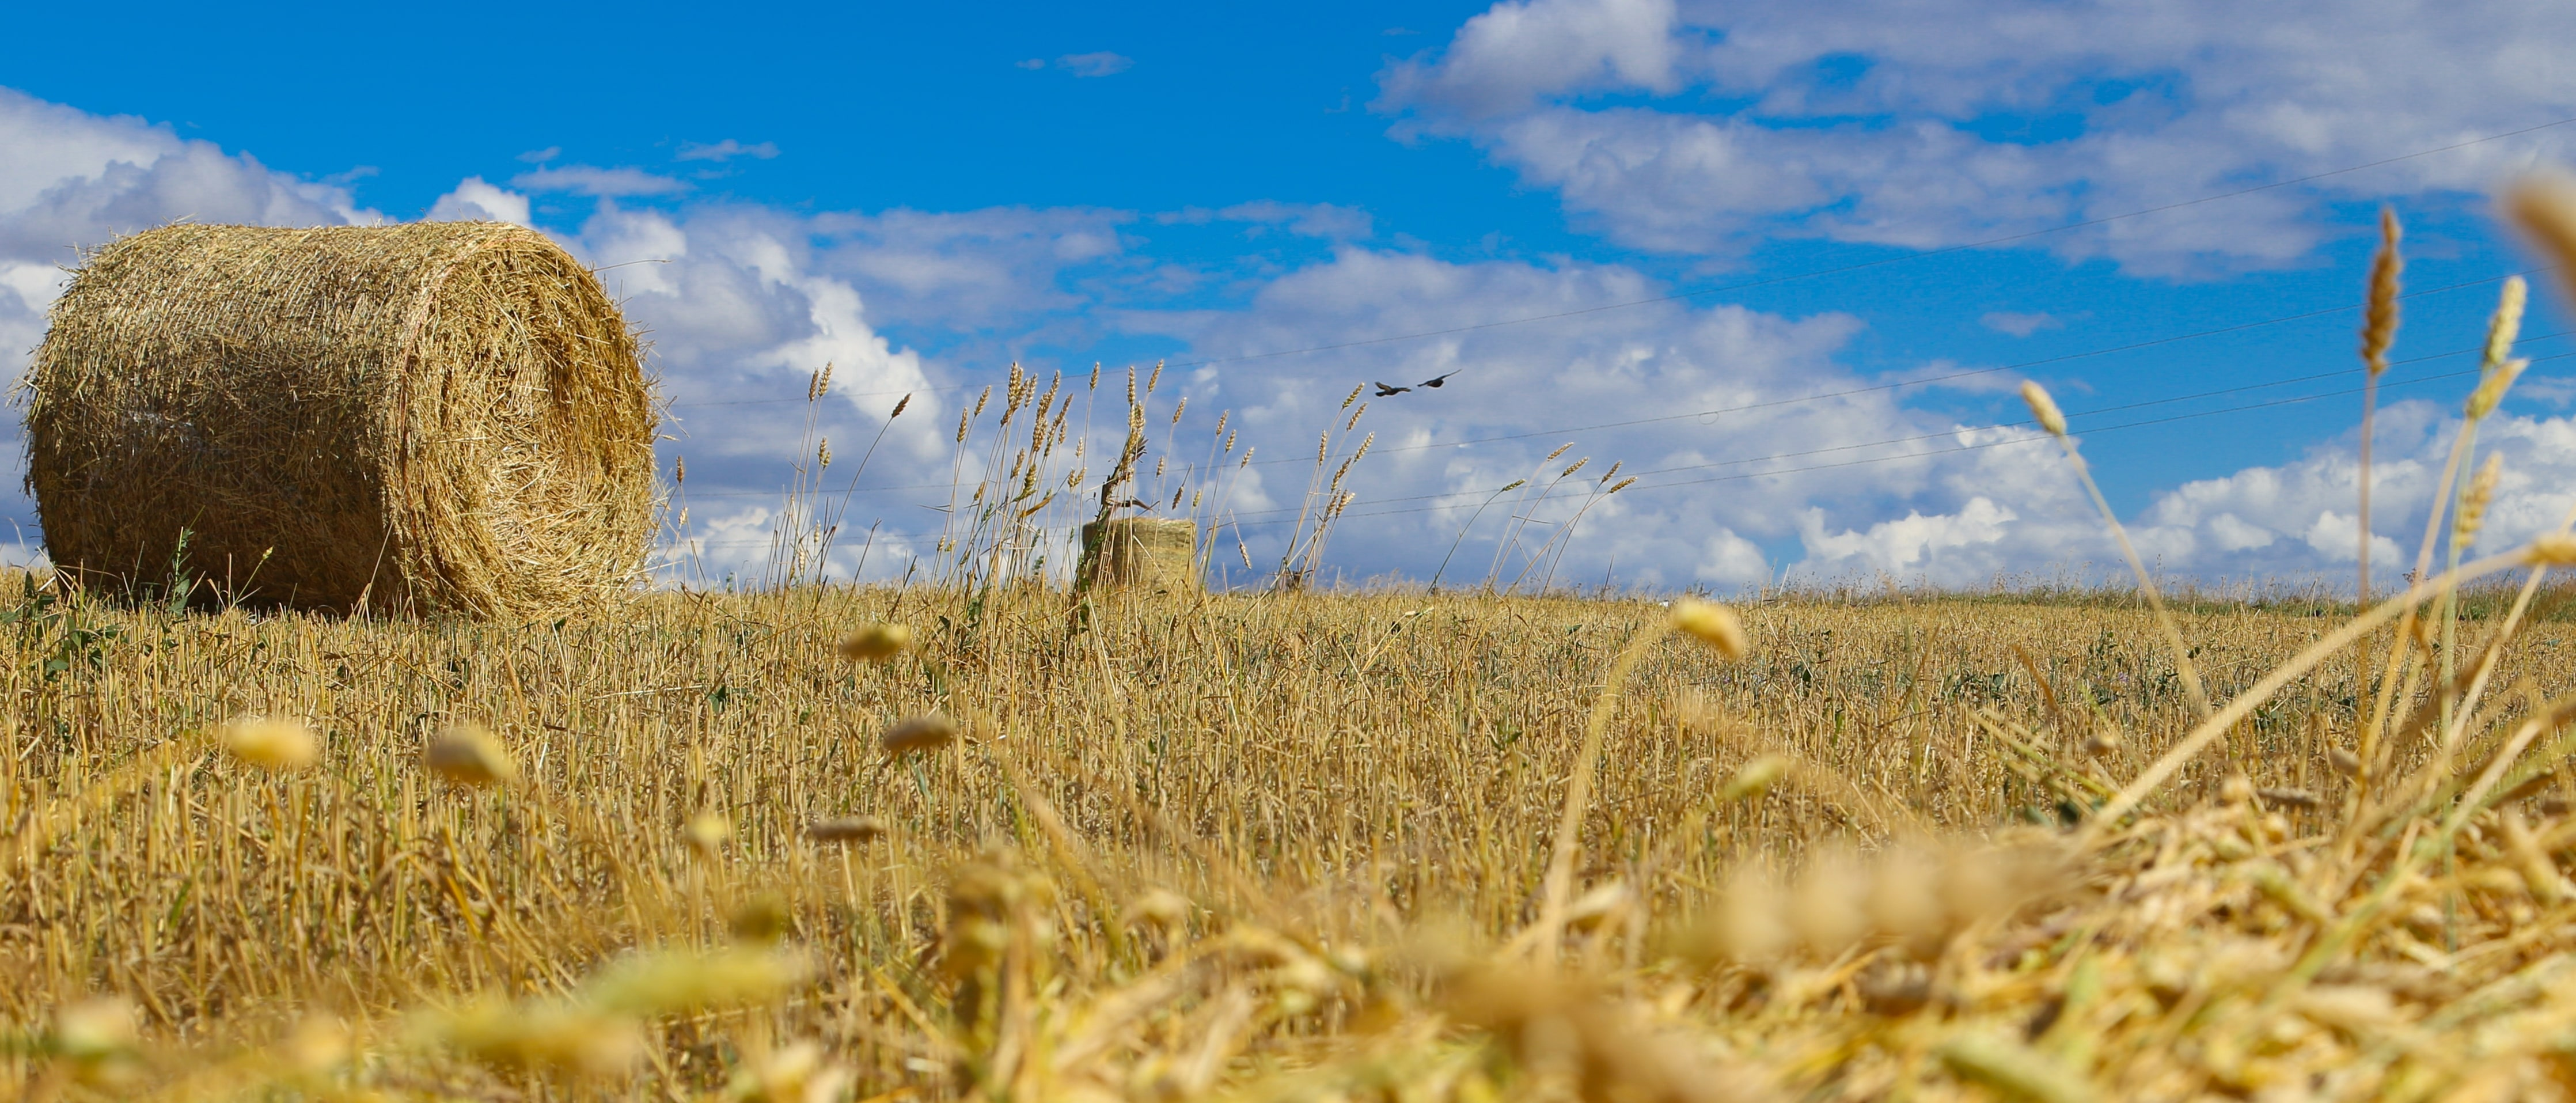 Agriculture of Kazakhstan is an ultramodern combine, standing idle in the field